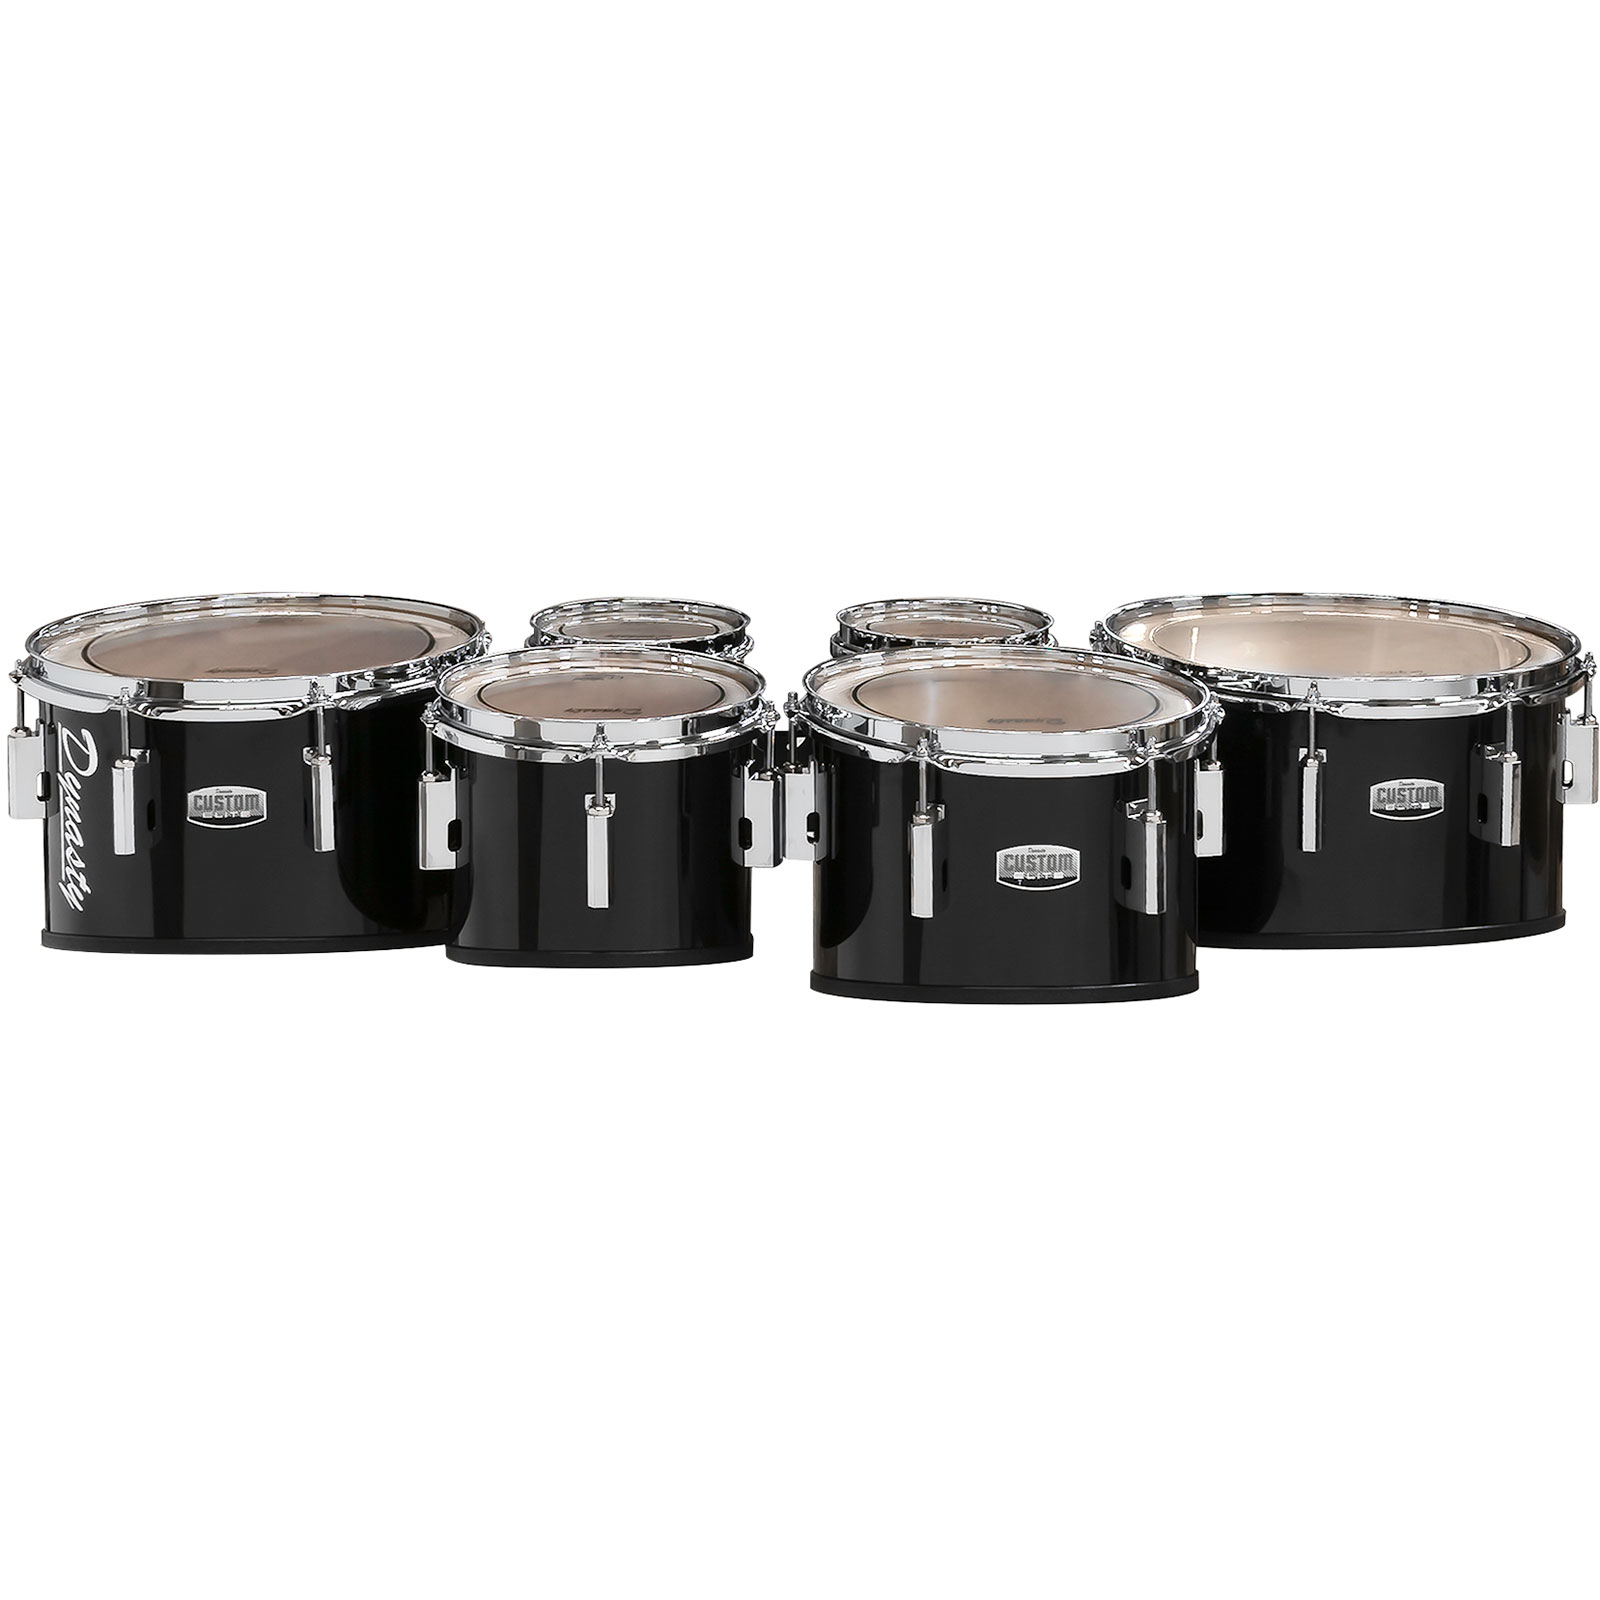 """Dynasty 6-6-8-10-12-13"""" Custom Elite Marching Tenors with Chrome Hardware in Black"""